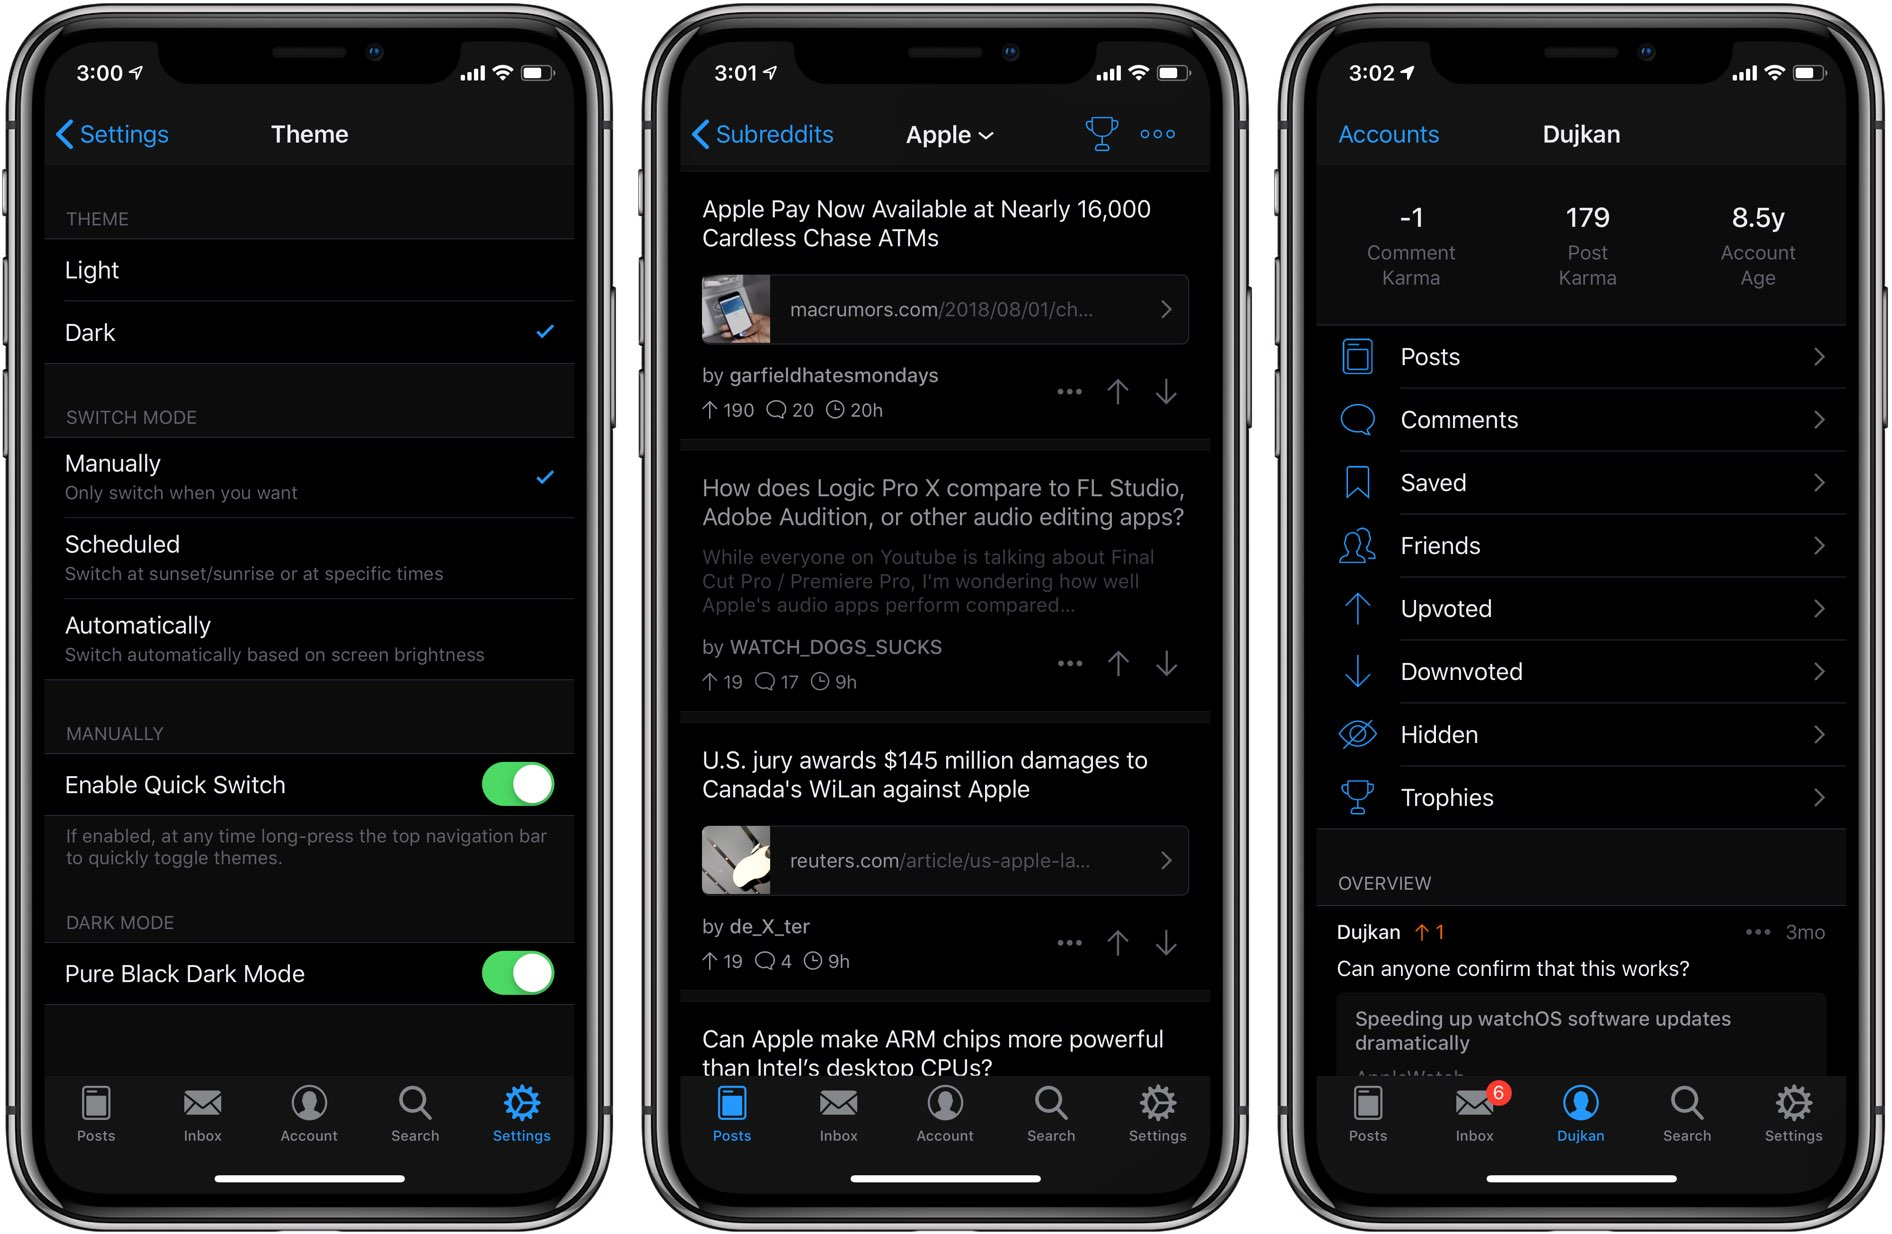 A screenshot showing Apollo's Dark Mode interface with the Pure Black option selected